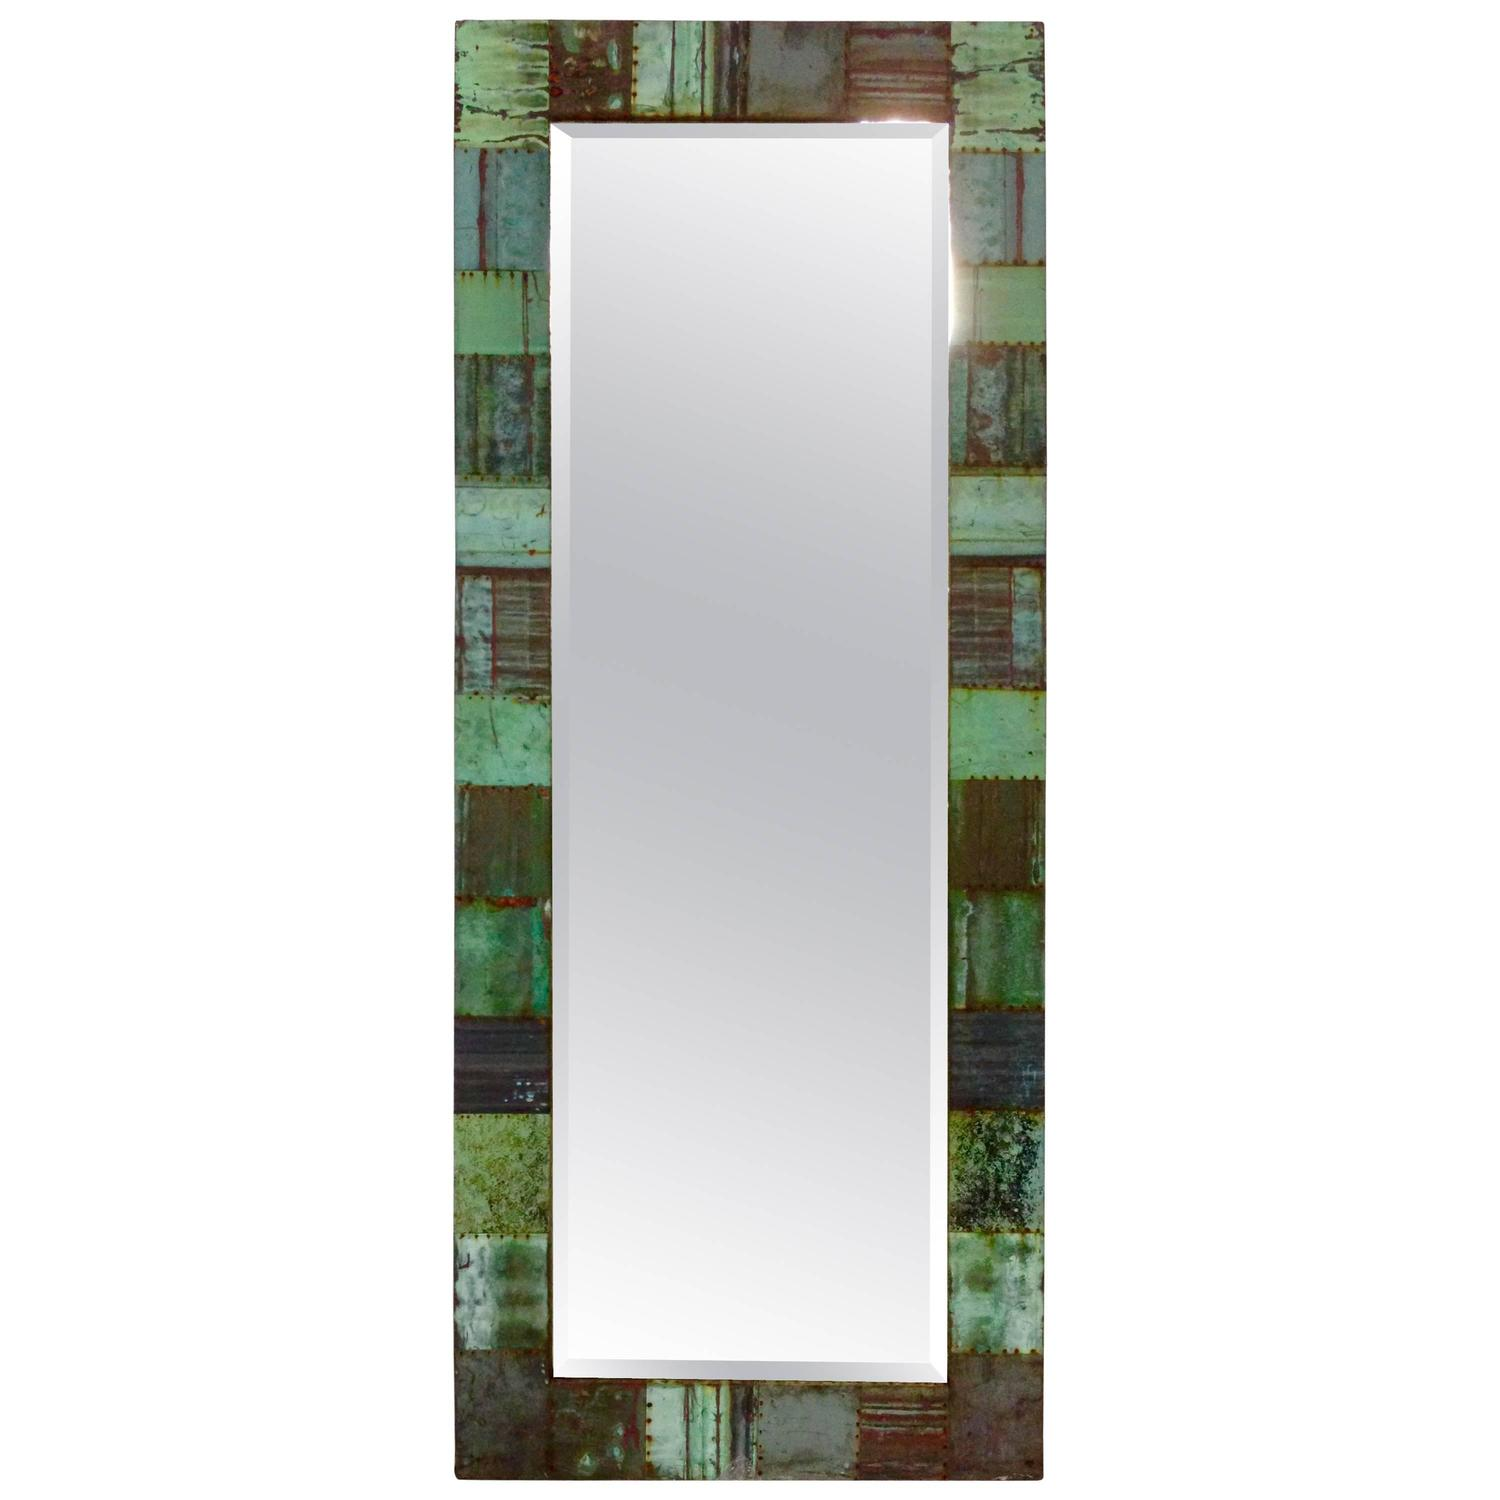 Industrial Mirrors - 78 For Sale at 1stdibs